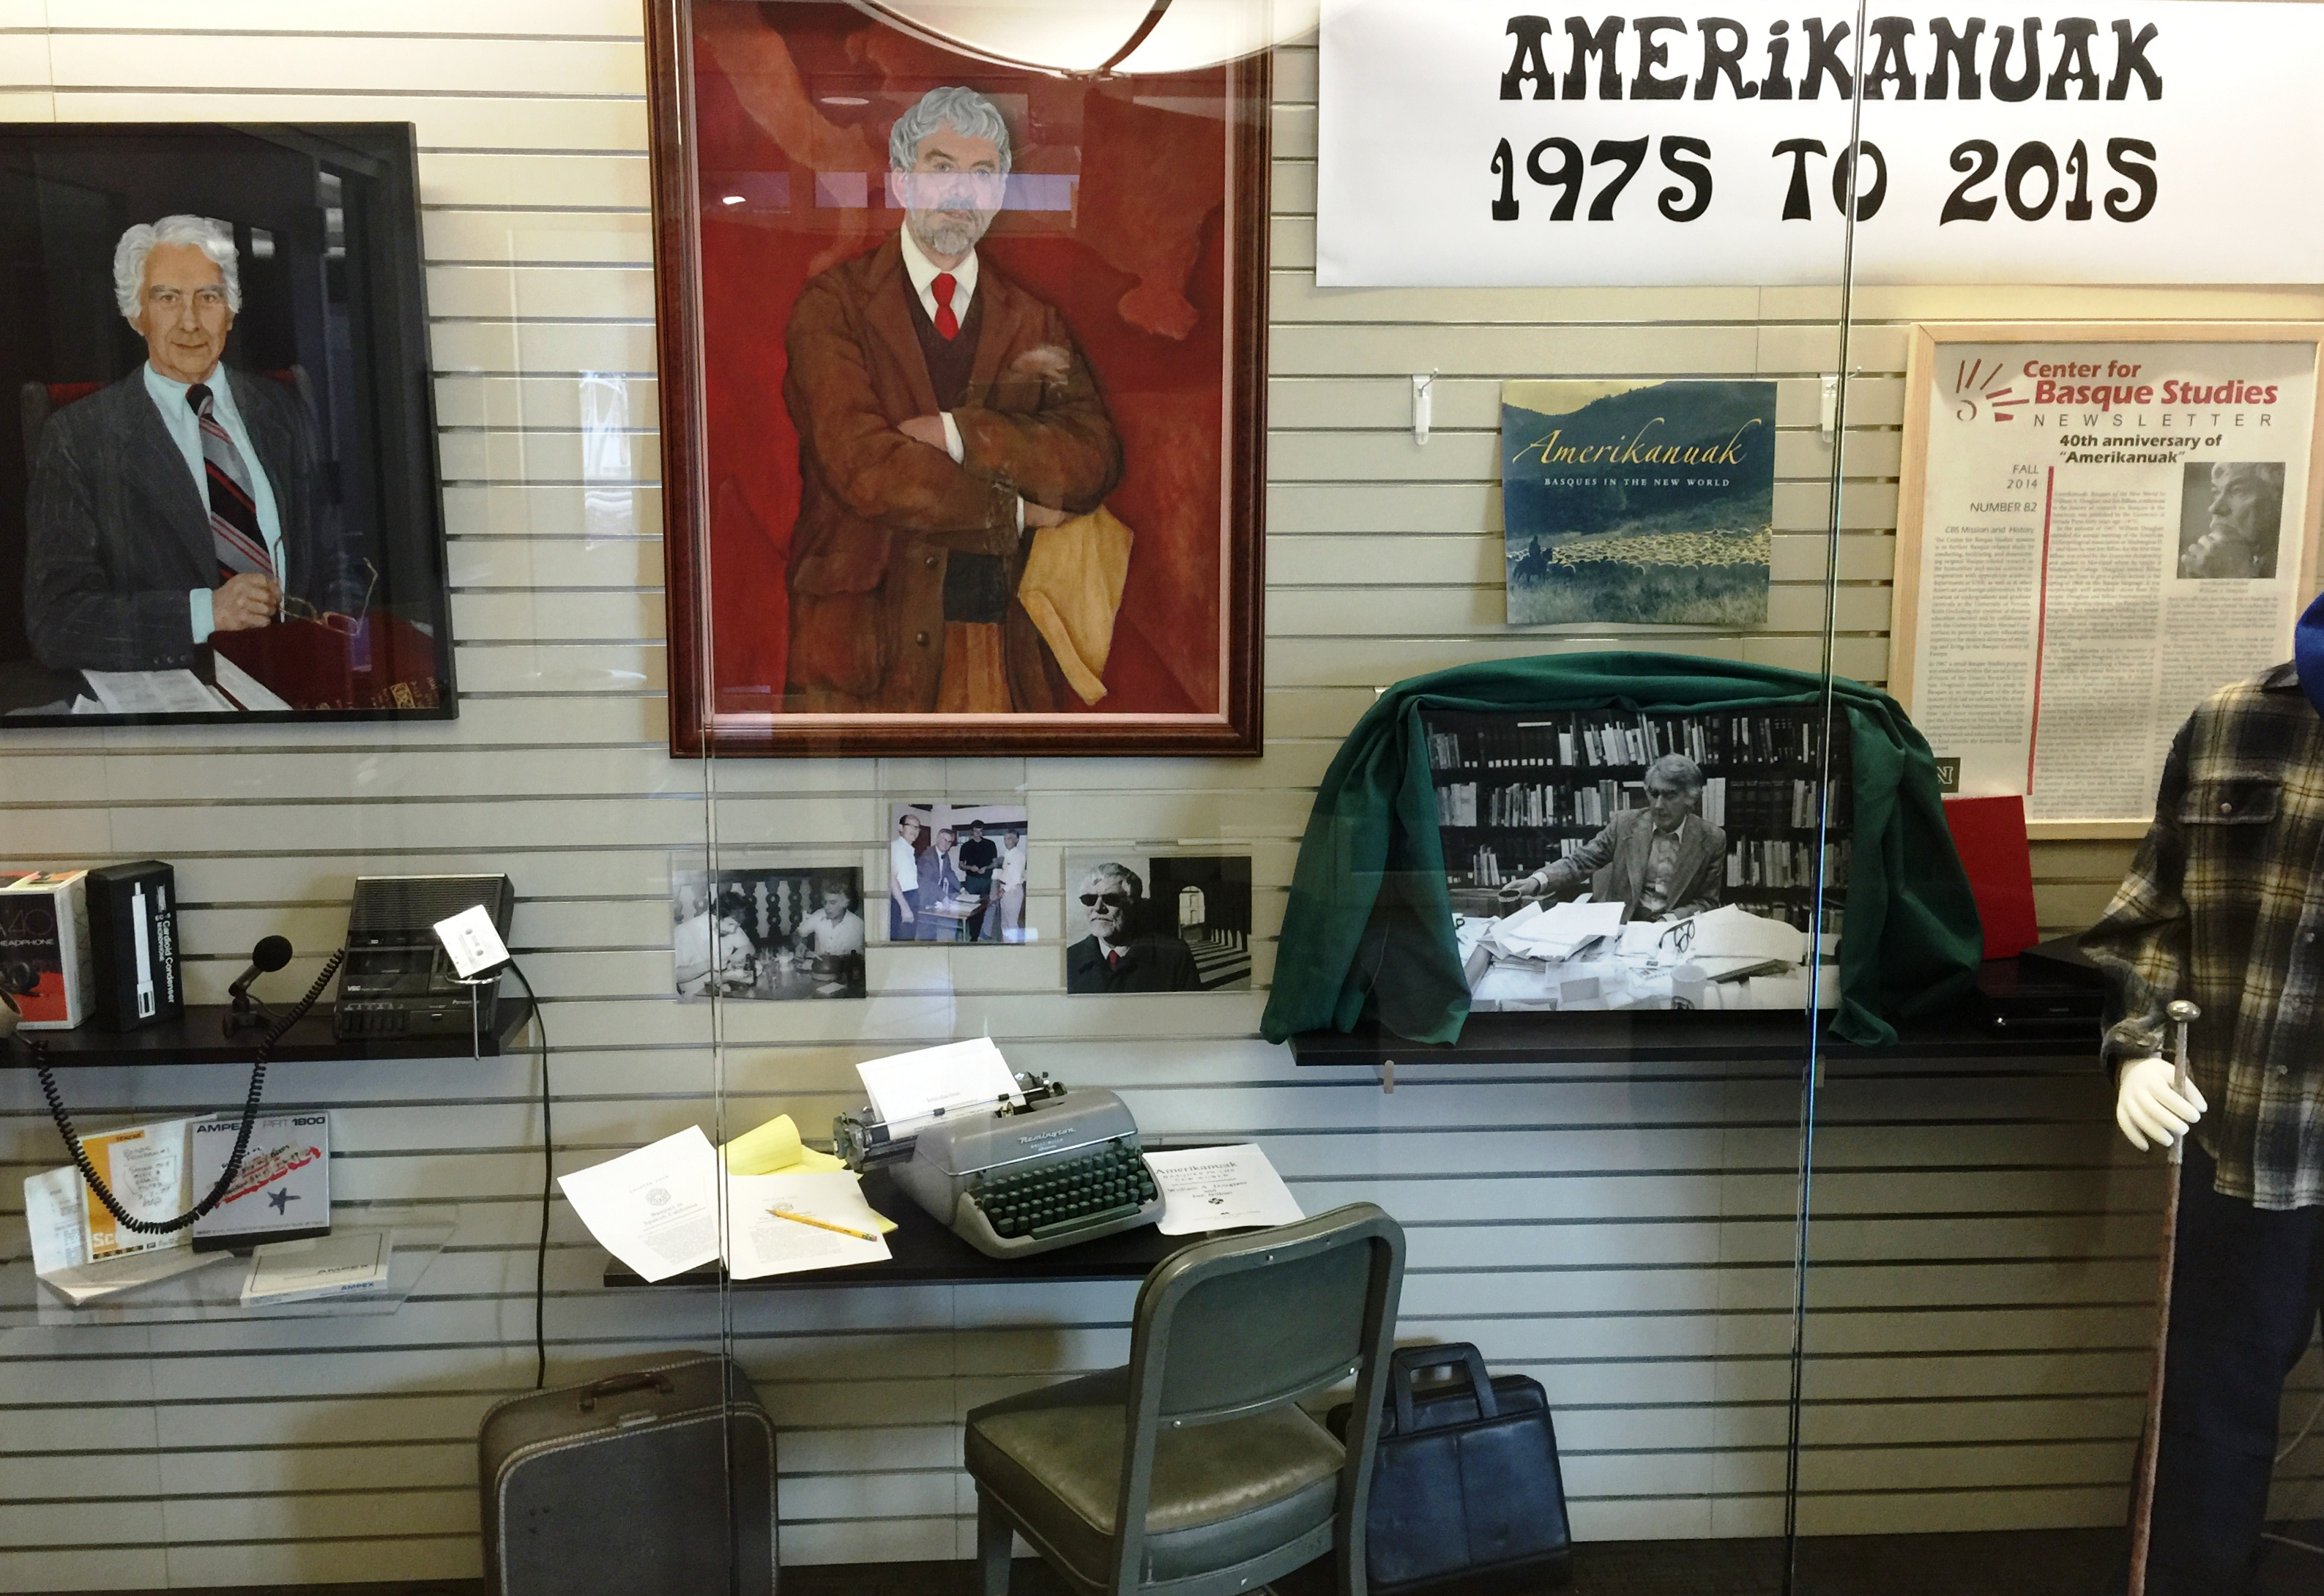 Amerikanuak Display